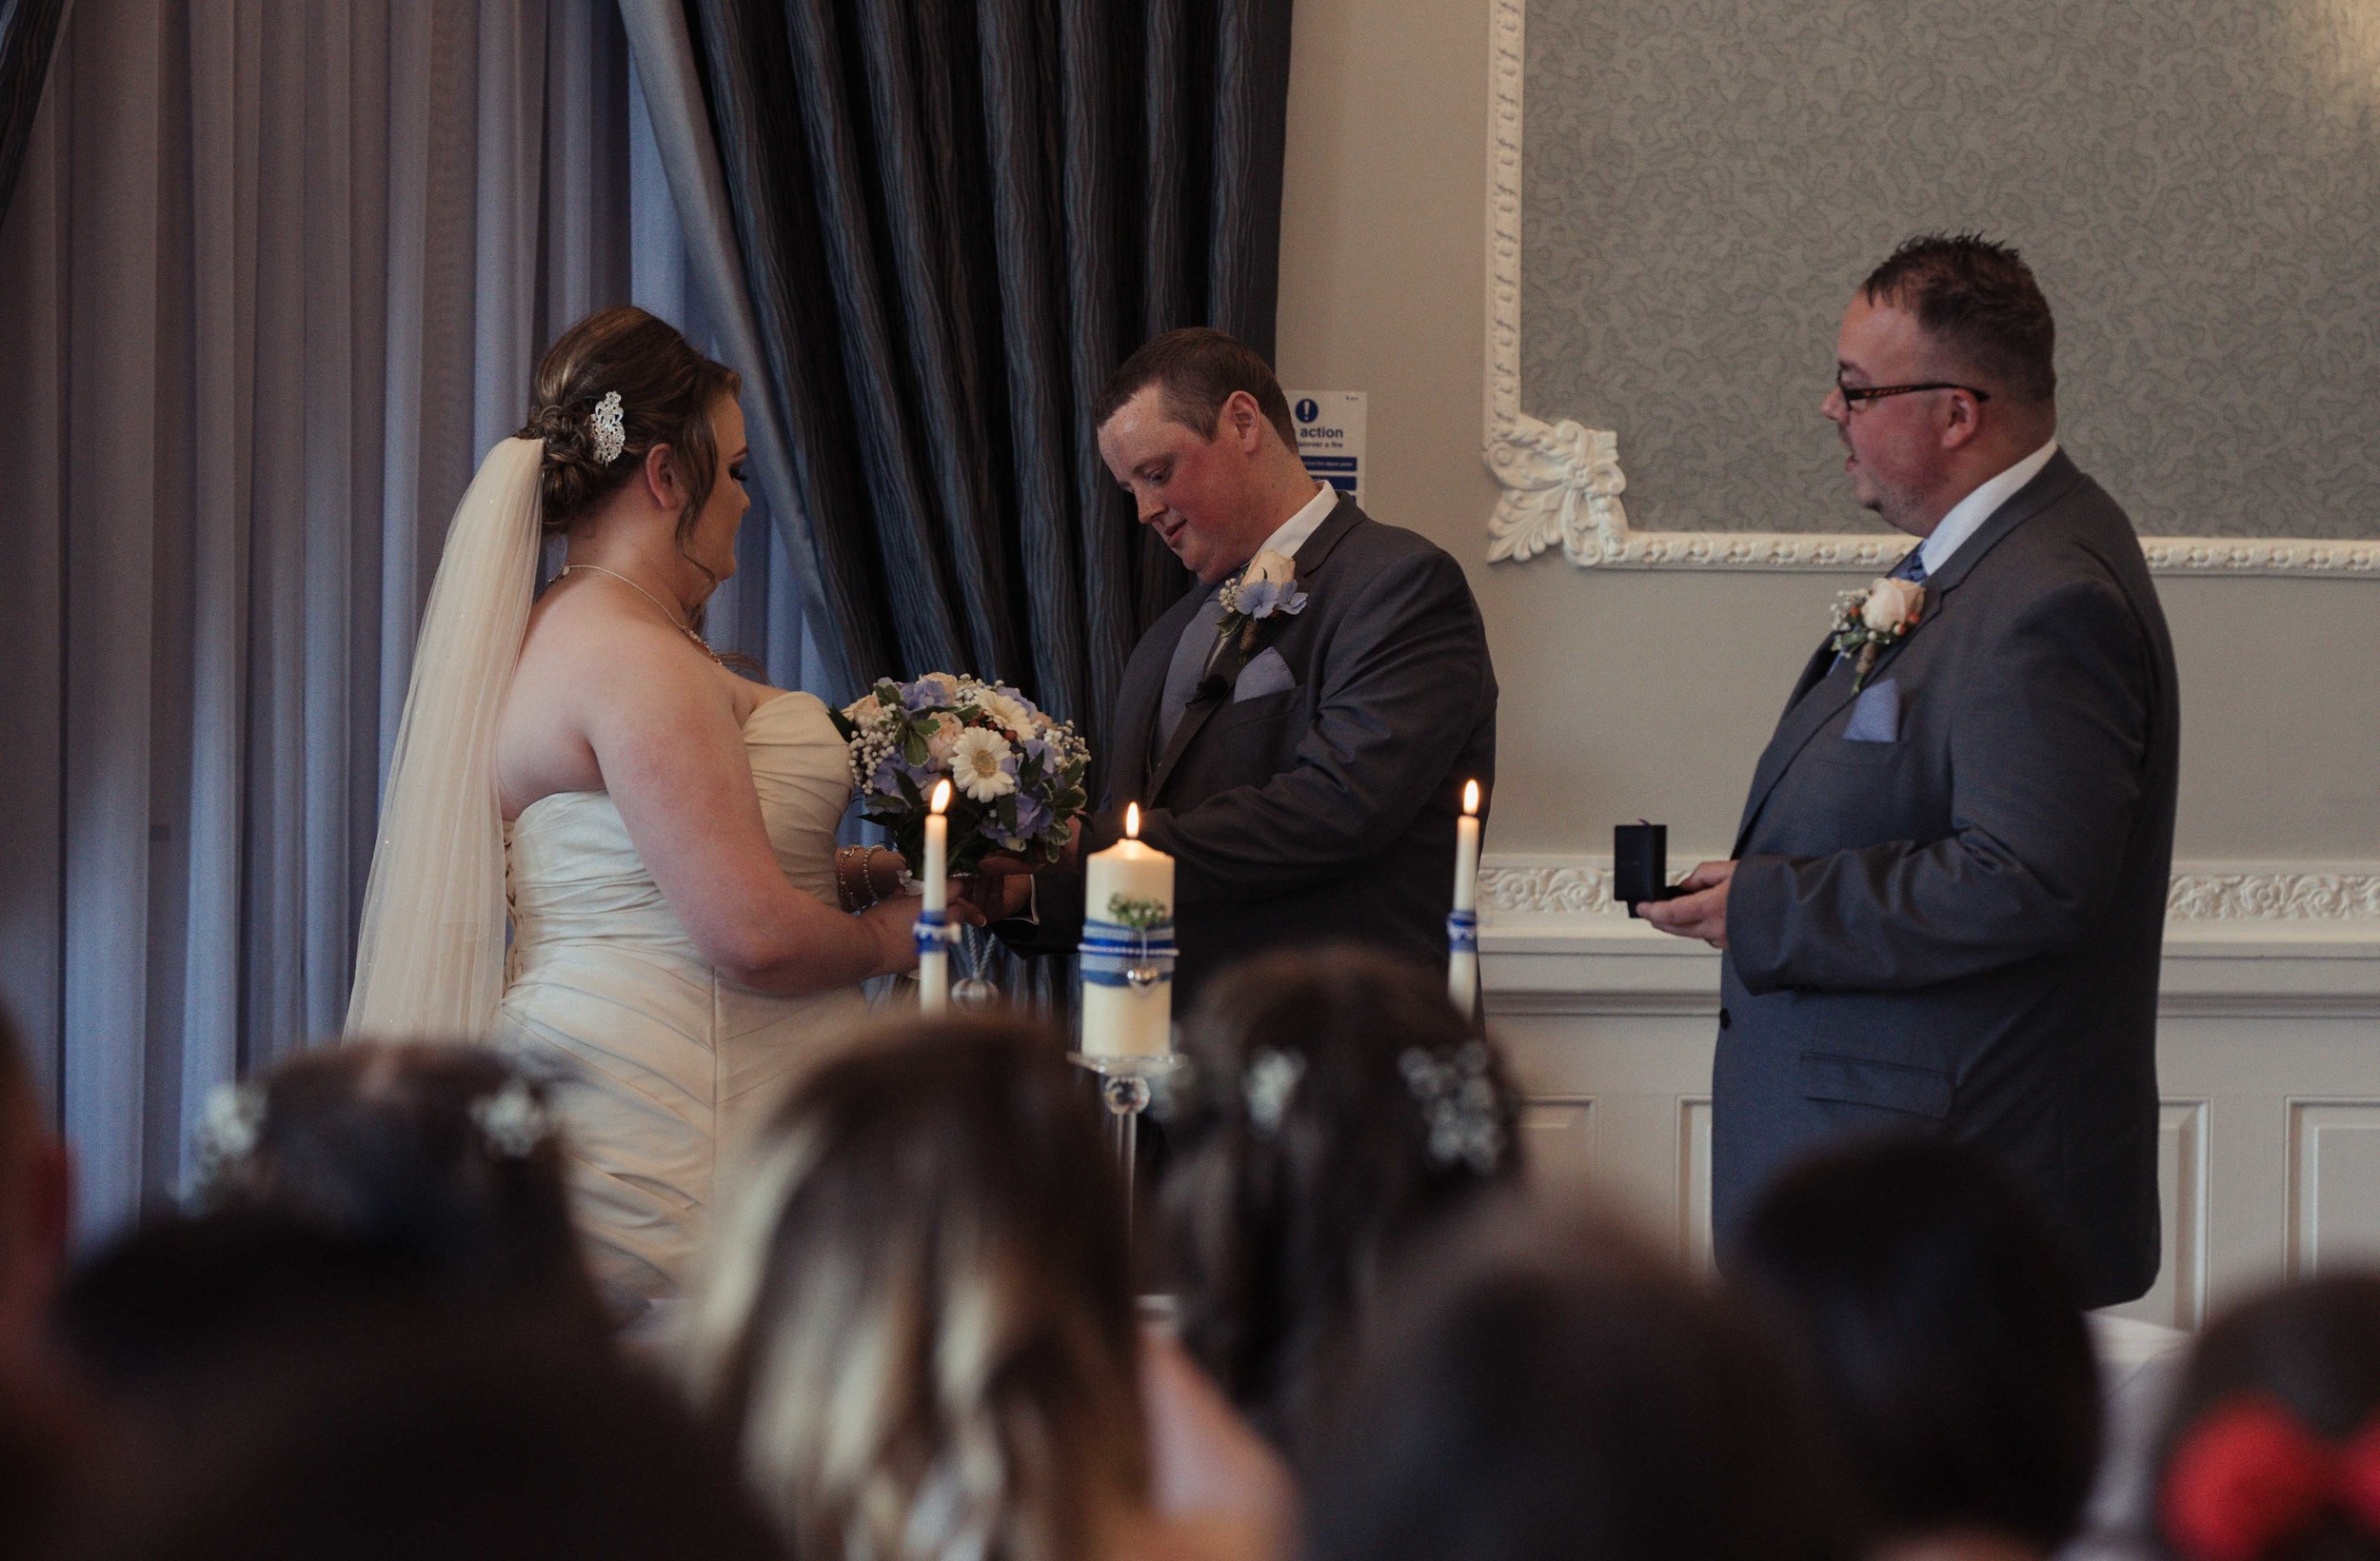 The bride and groom exchange their rings during the wedding ceremony